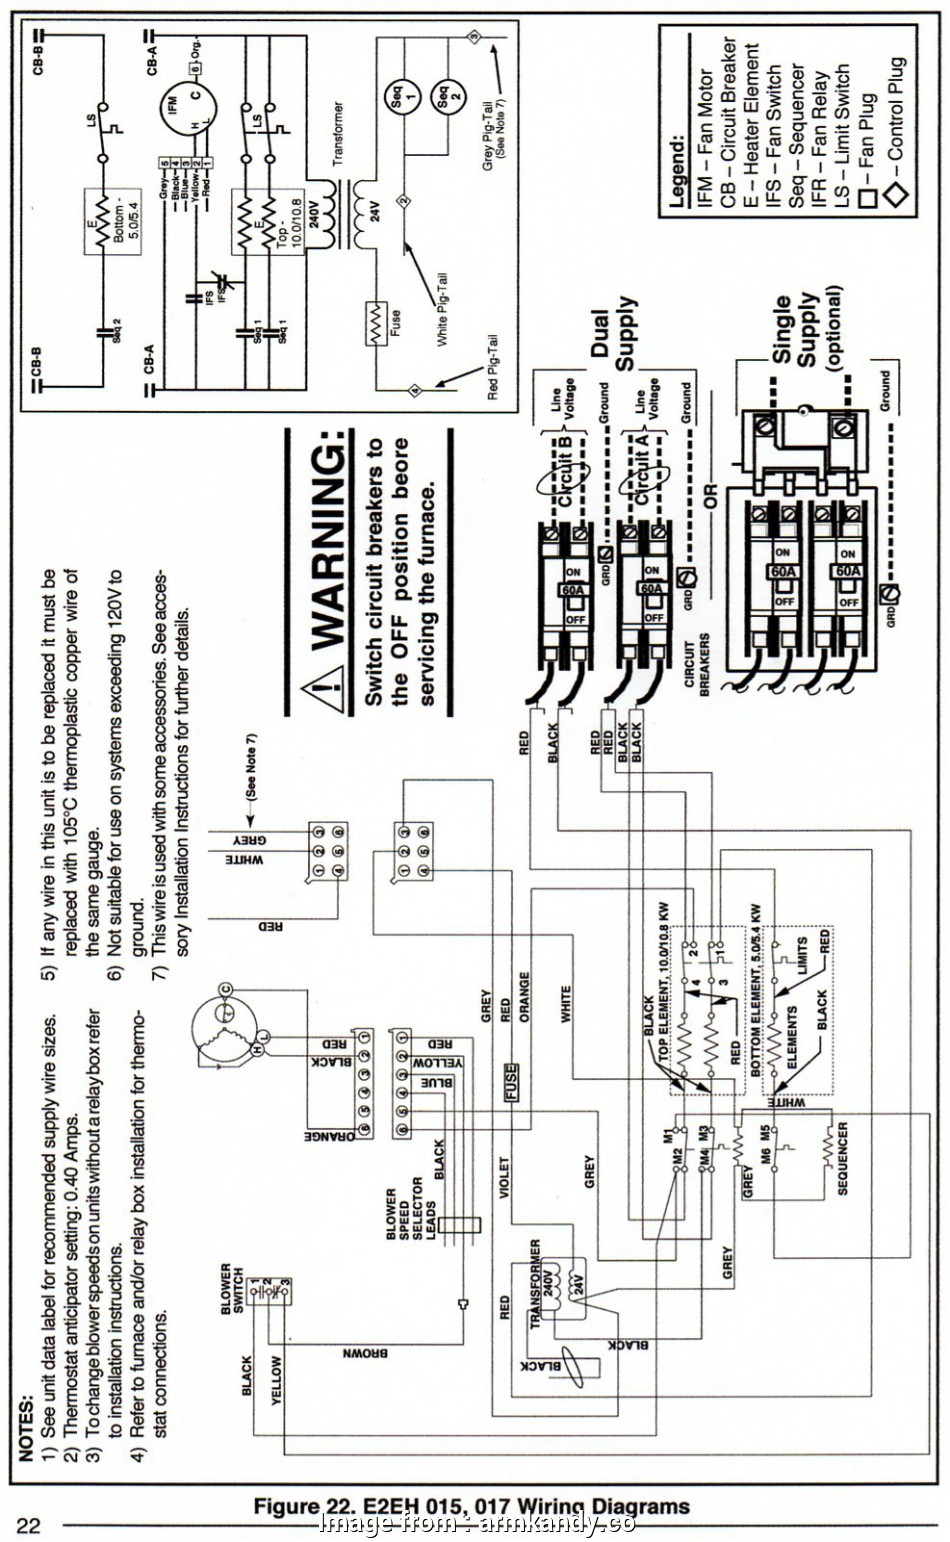 Thermostat Symbol Wiring Diagram - Wiring Diagrams on